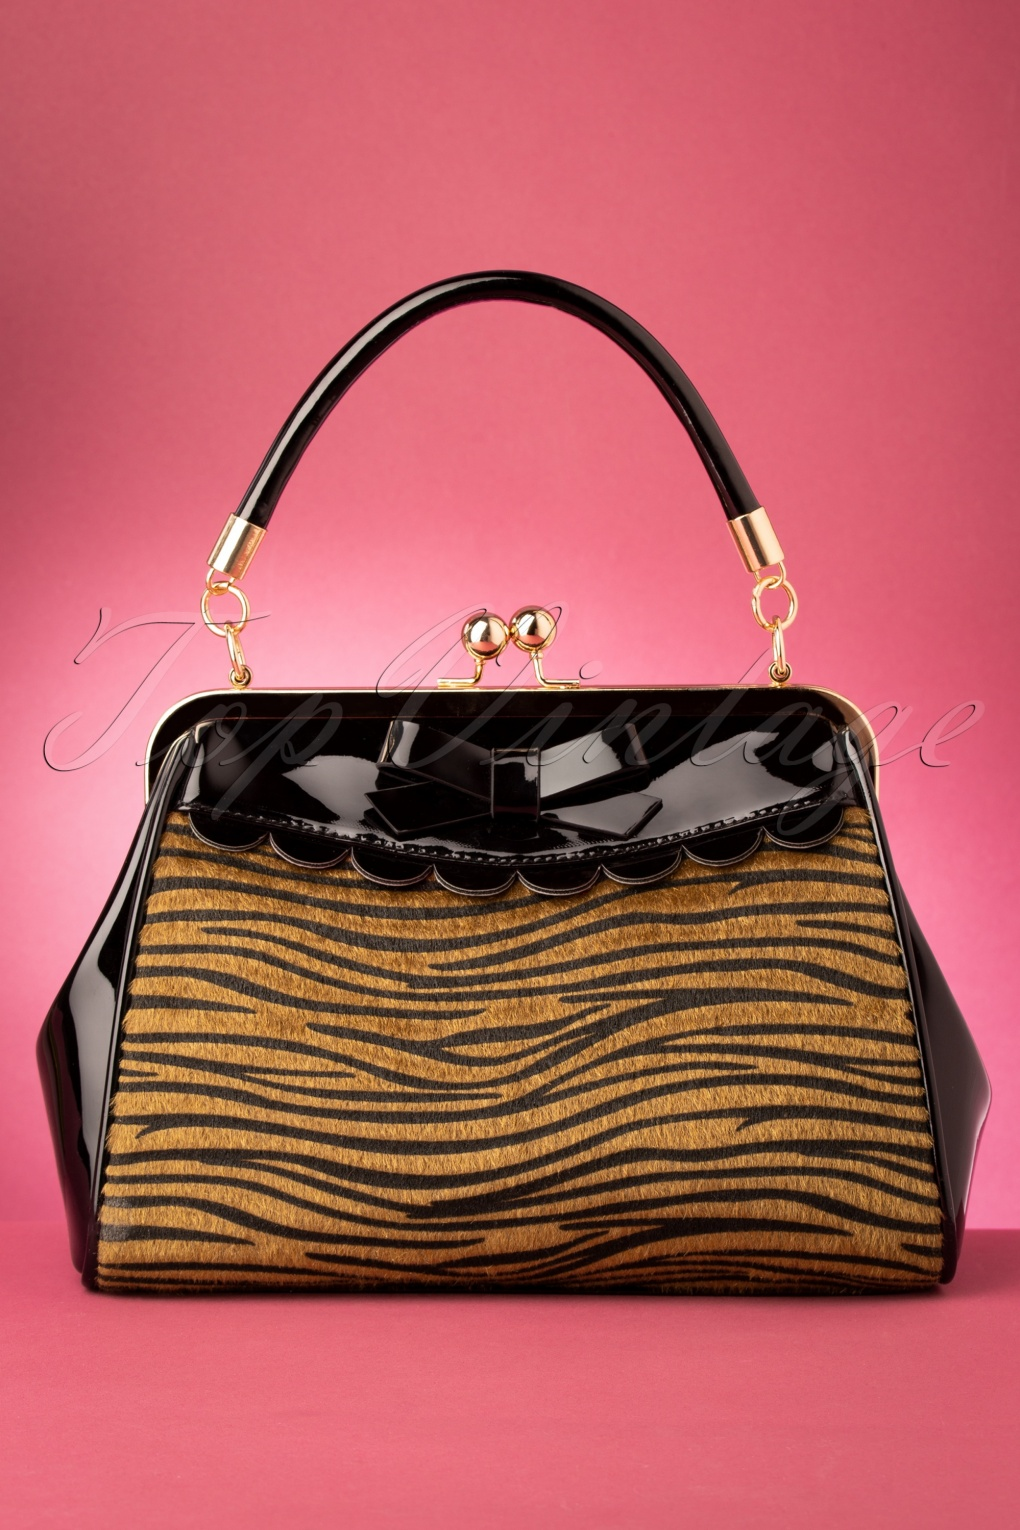 What Did Women Wear in the 1950s? 1950s Fashion Guide 50s Crazy Little Tiger Handbag in Black £24.95 AT vintagedancer.com